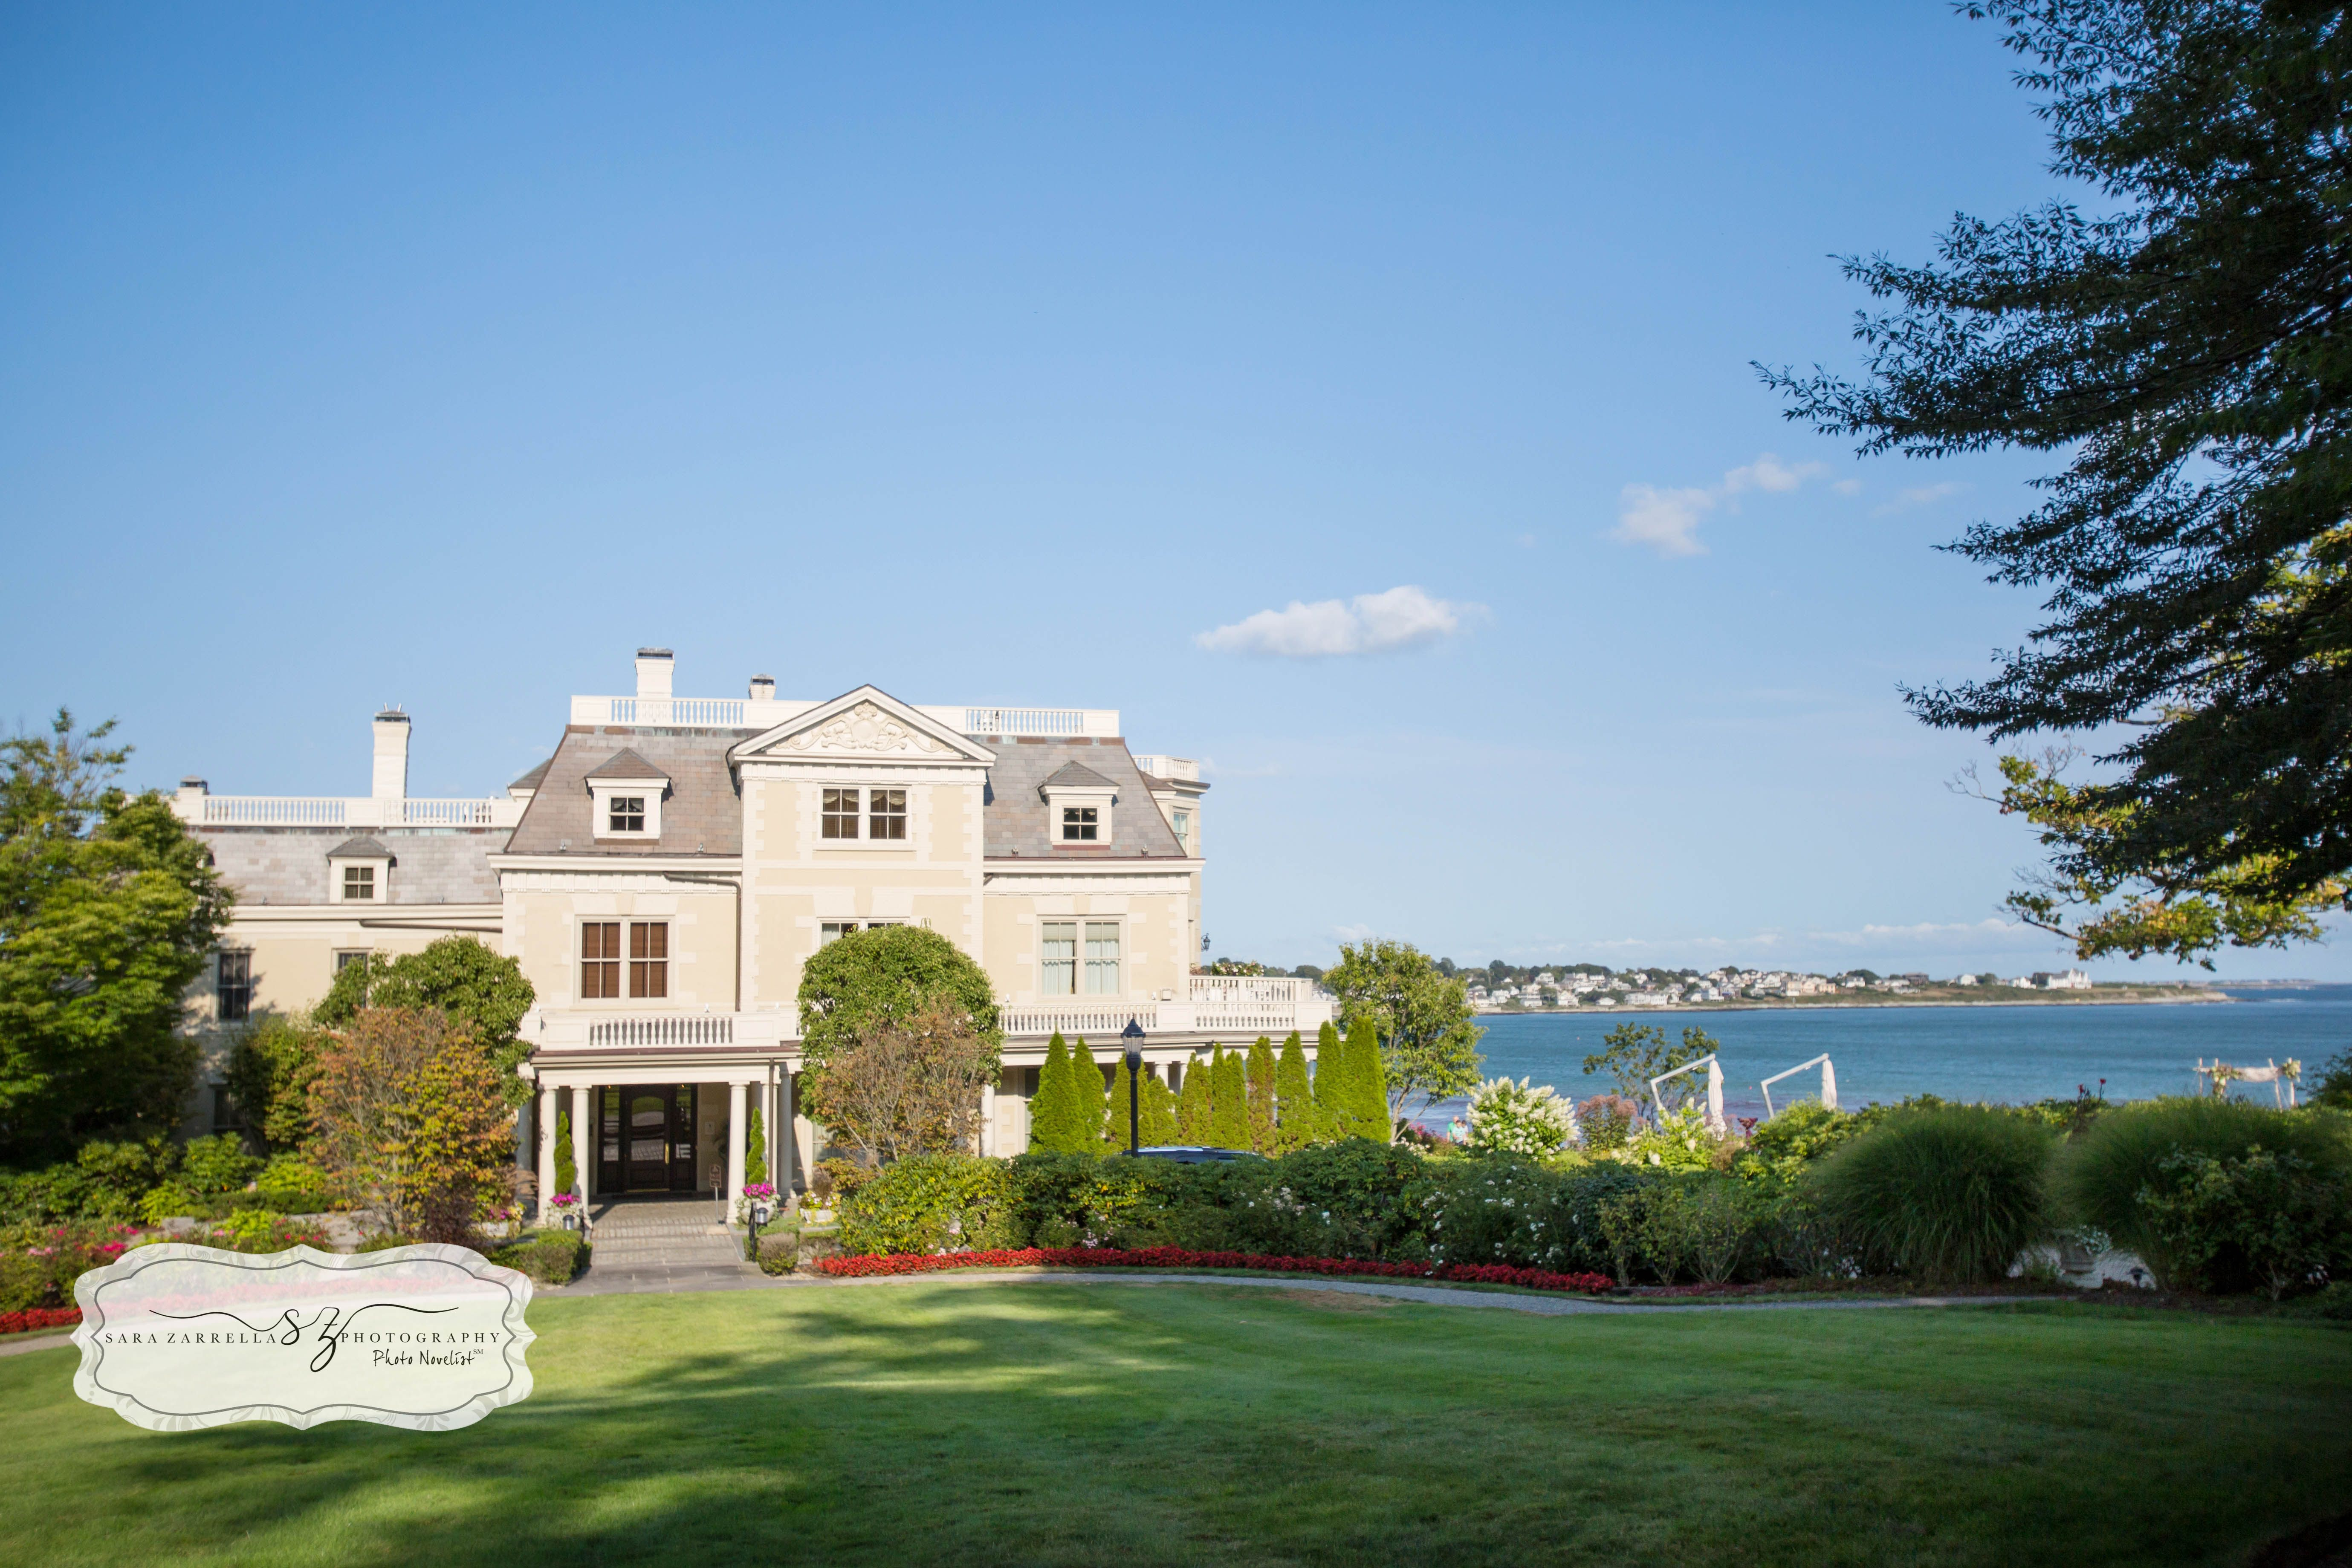 The Chanler At Cliff Walk Rhode Island Wedding Venues Newport Ri Wedding Rhode Island Wedding